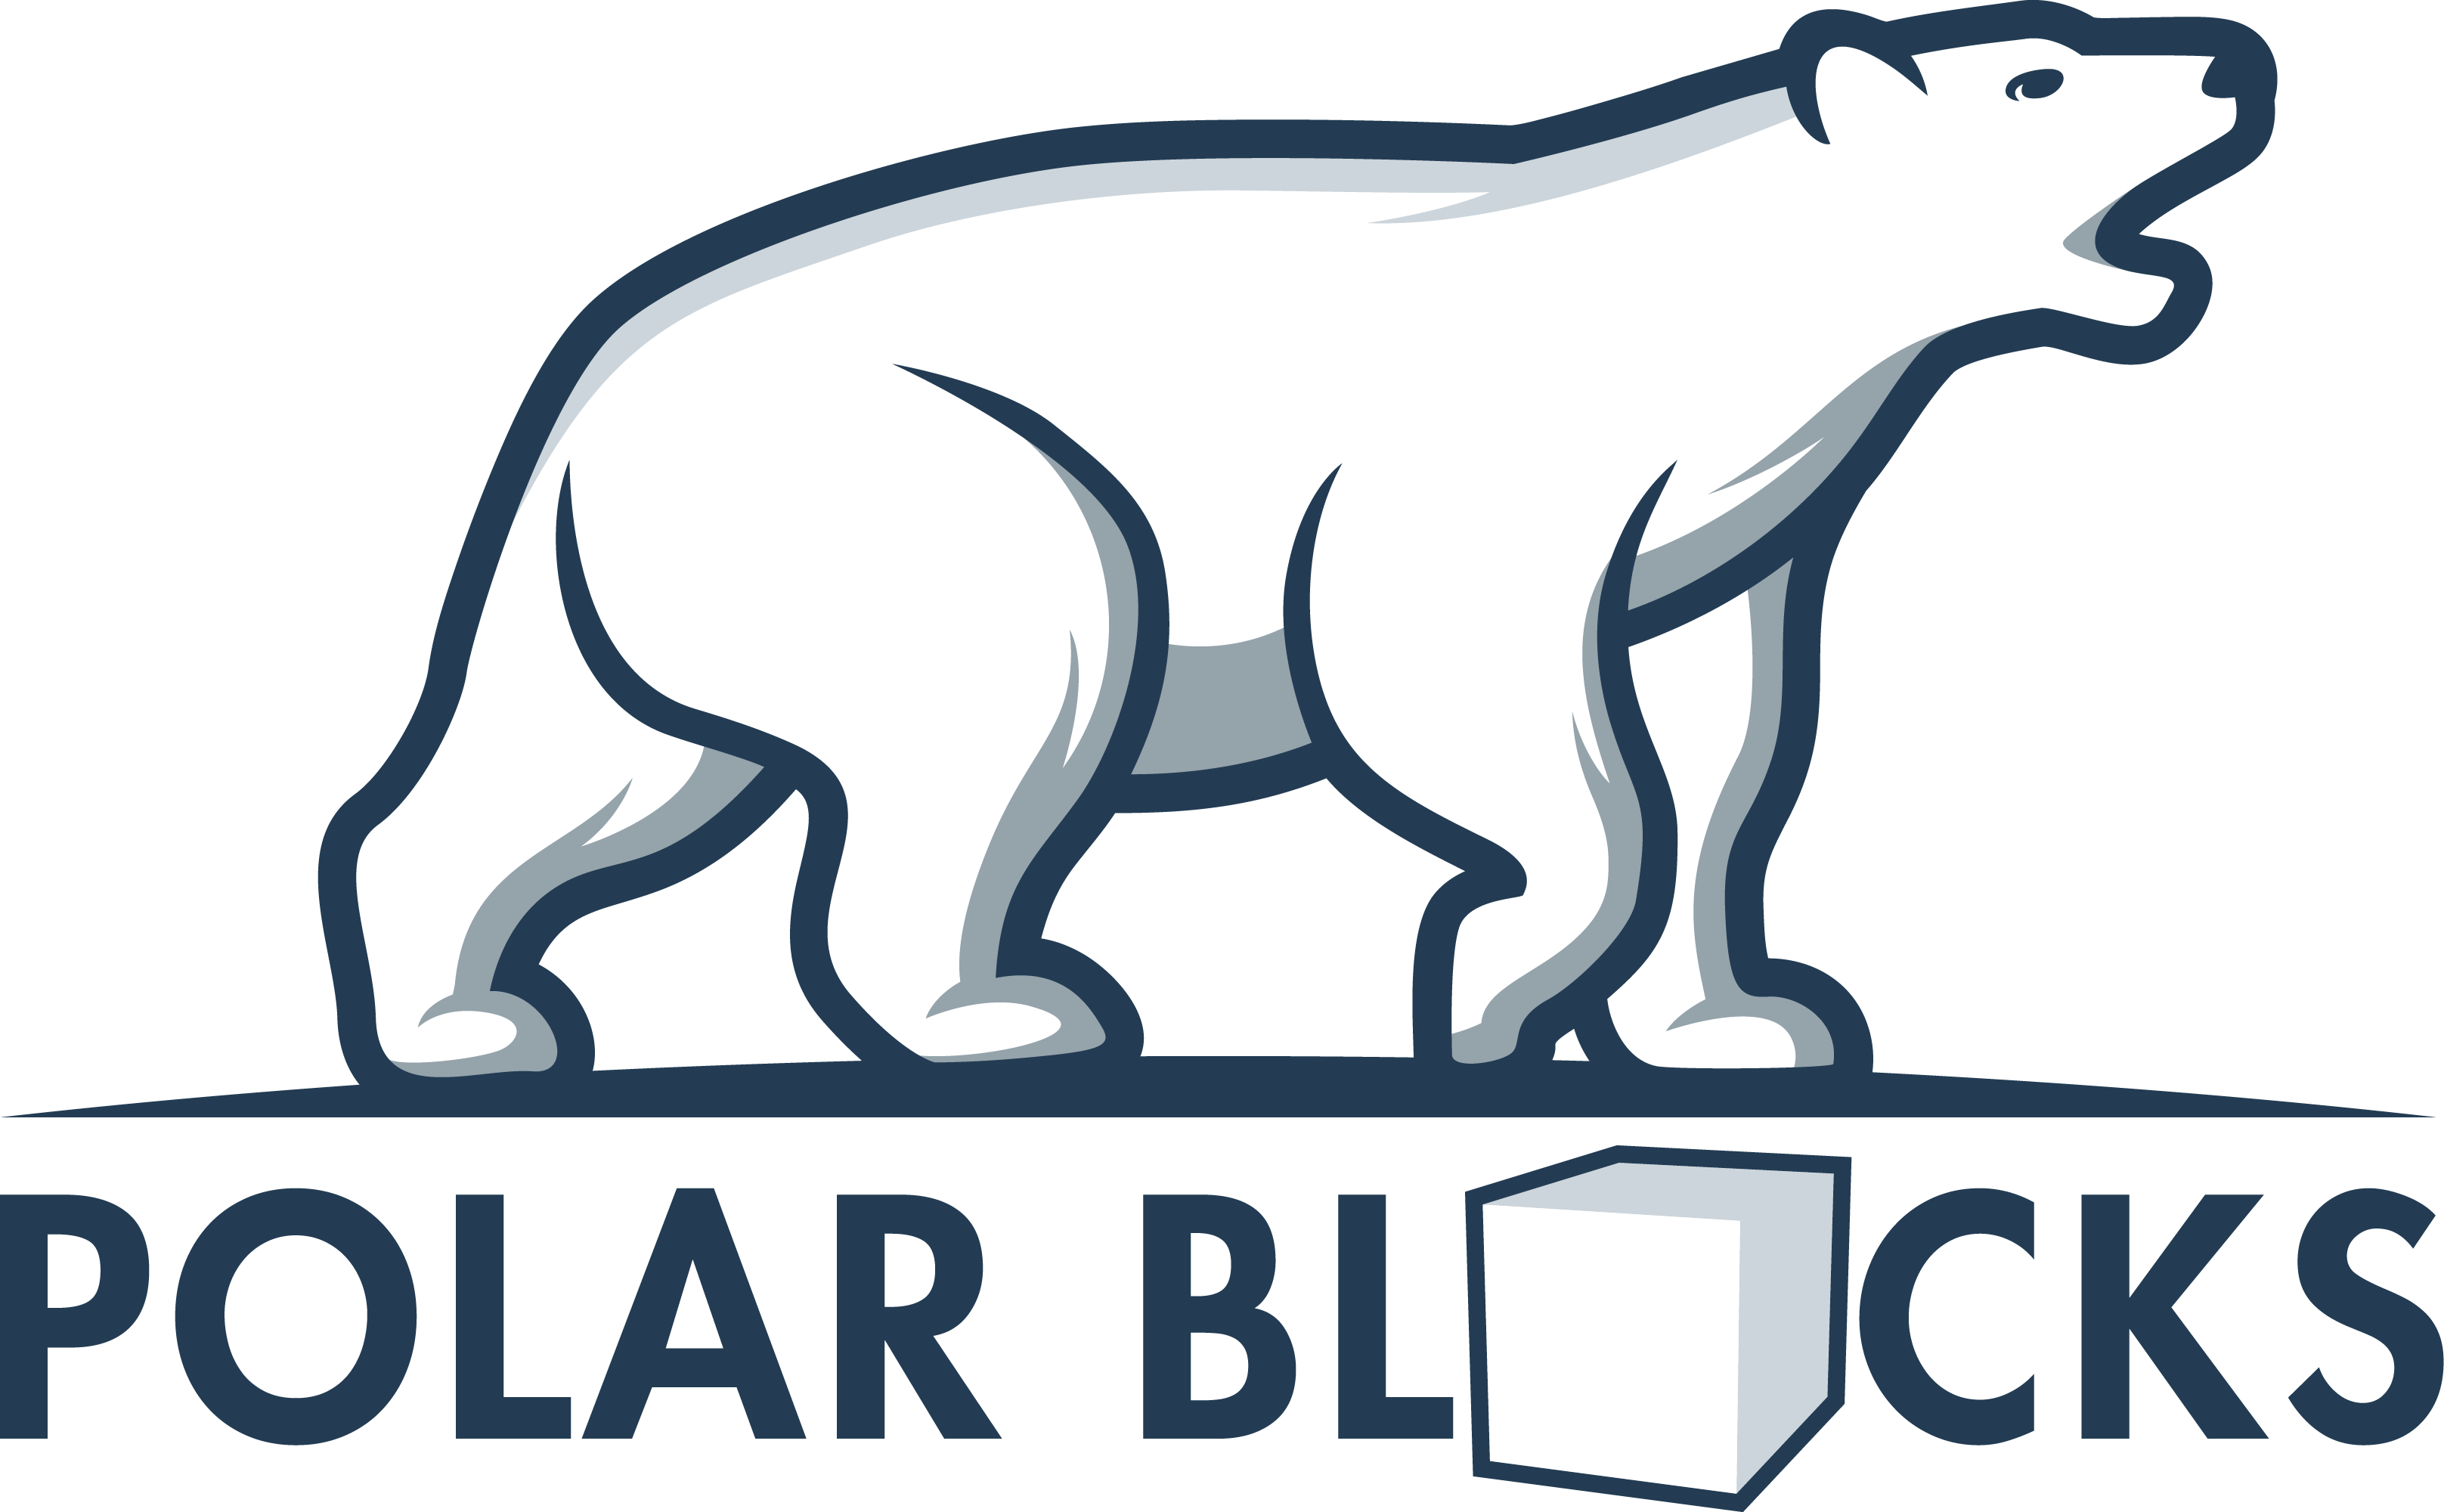 POLAR BLOCKS